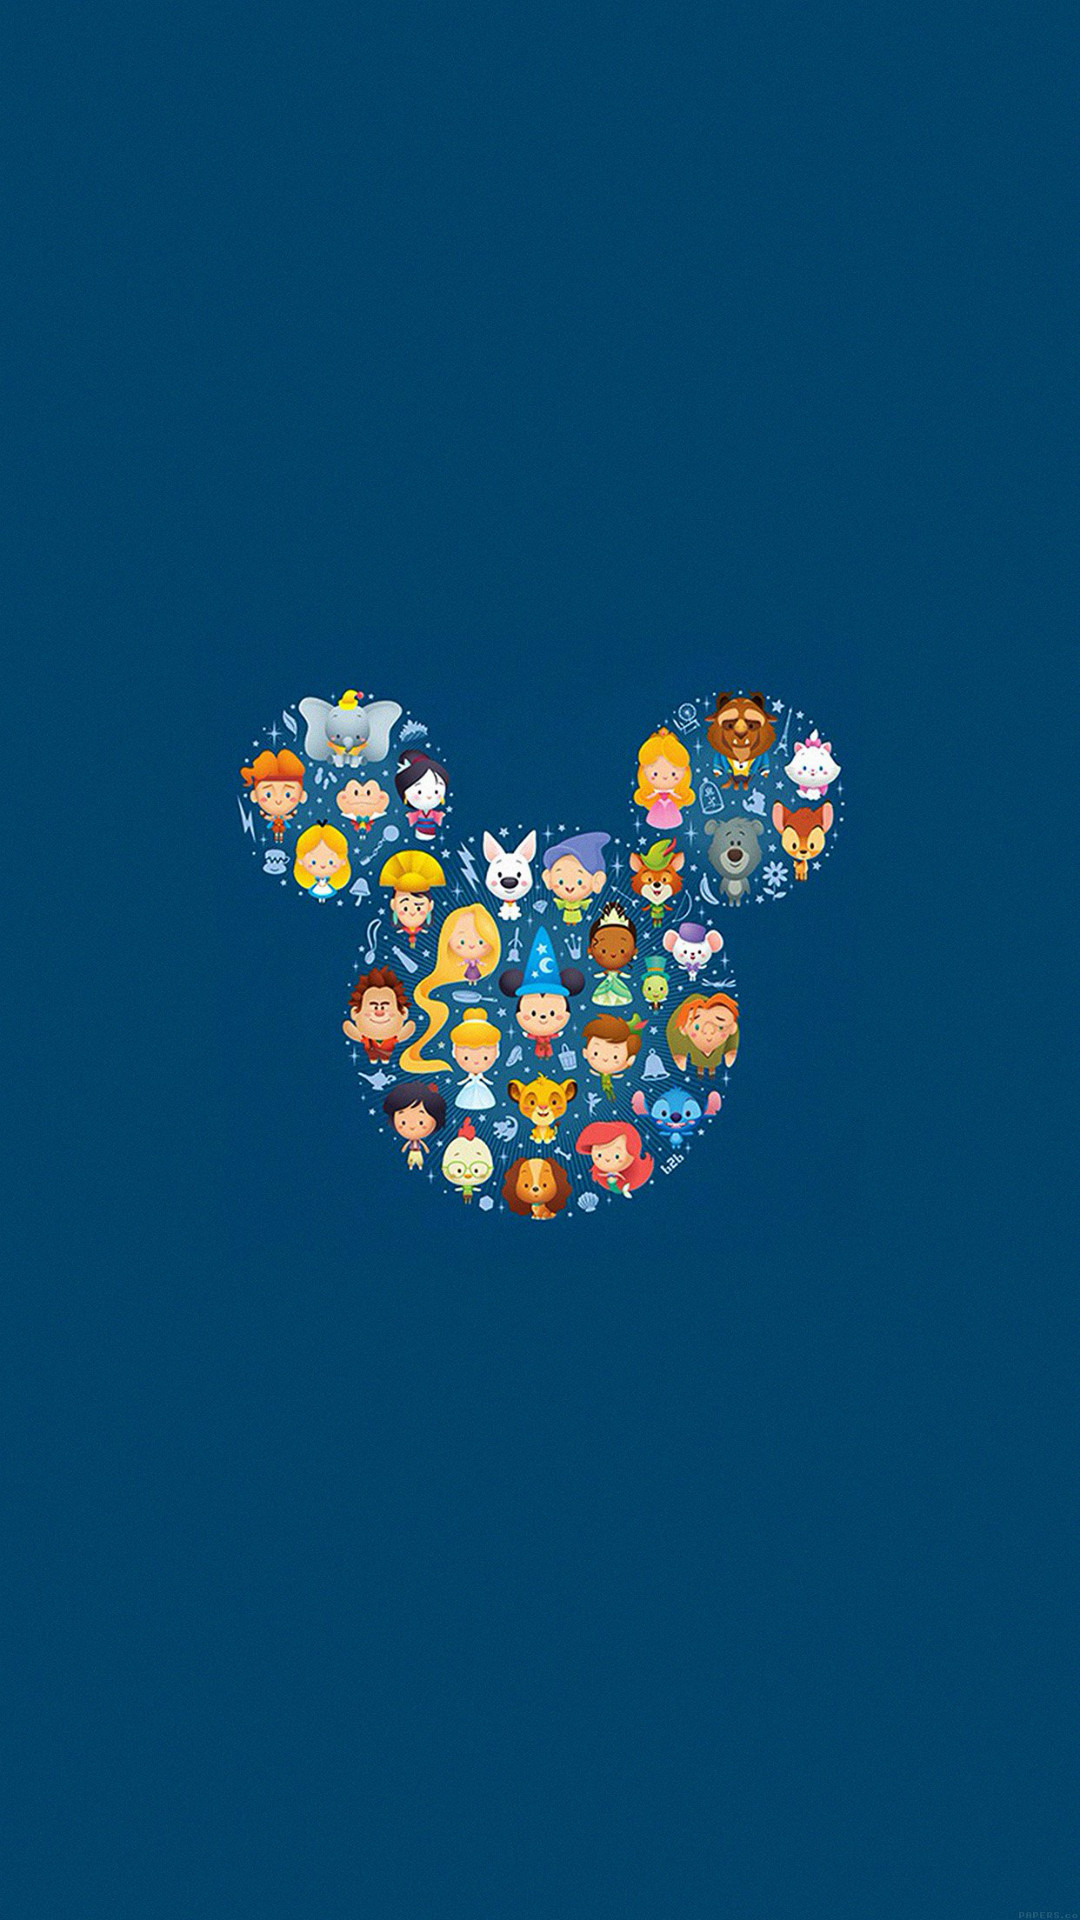 disney iphone wallpapers | iphone wallpaper